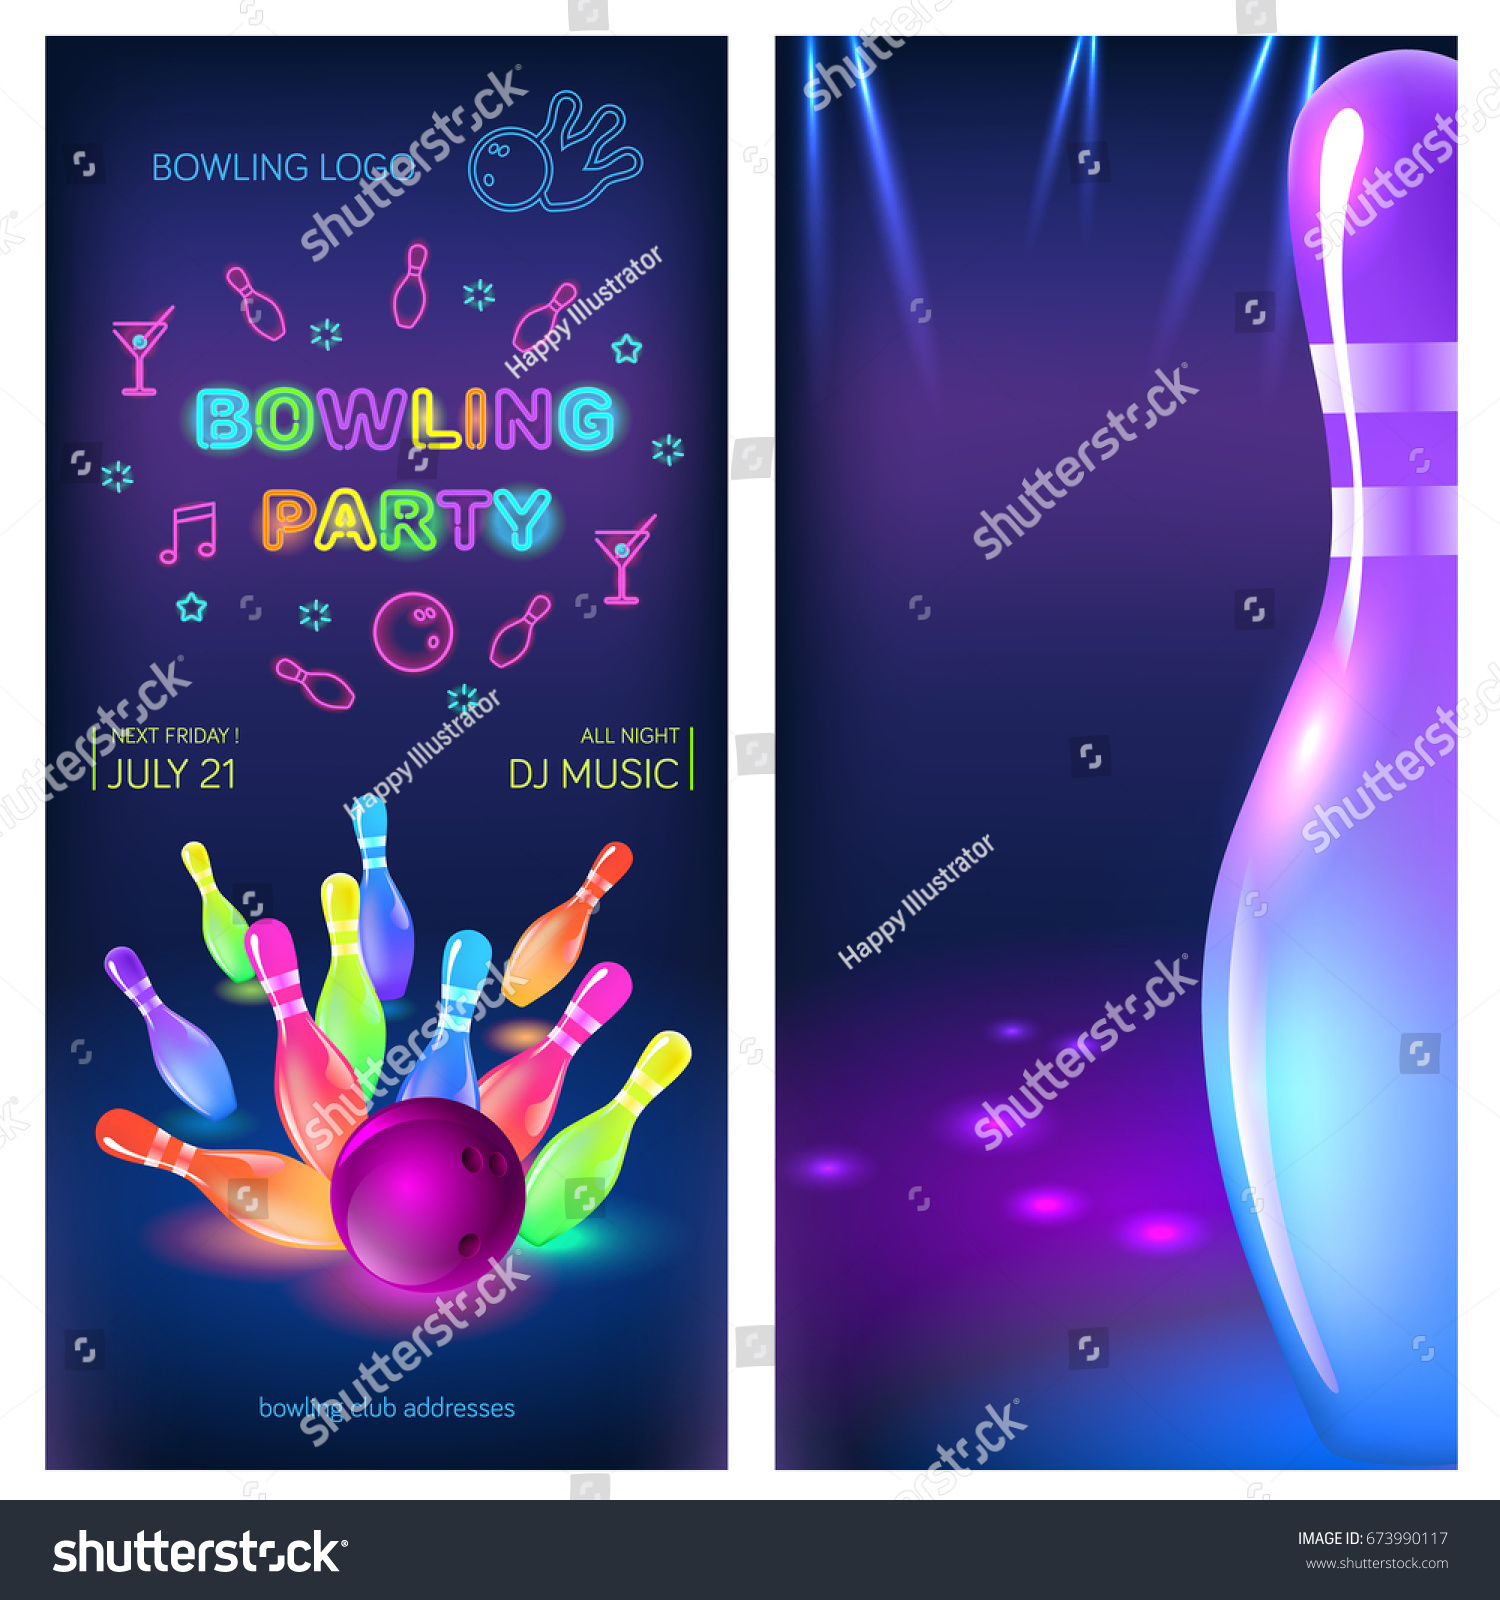 Bowling party flyer template vector clip stock vector 673990117 bowling party flyer template vector clip art illustration pronofoot35fo Images